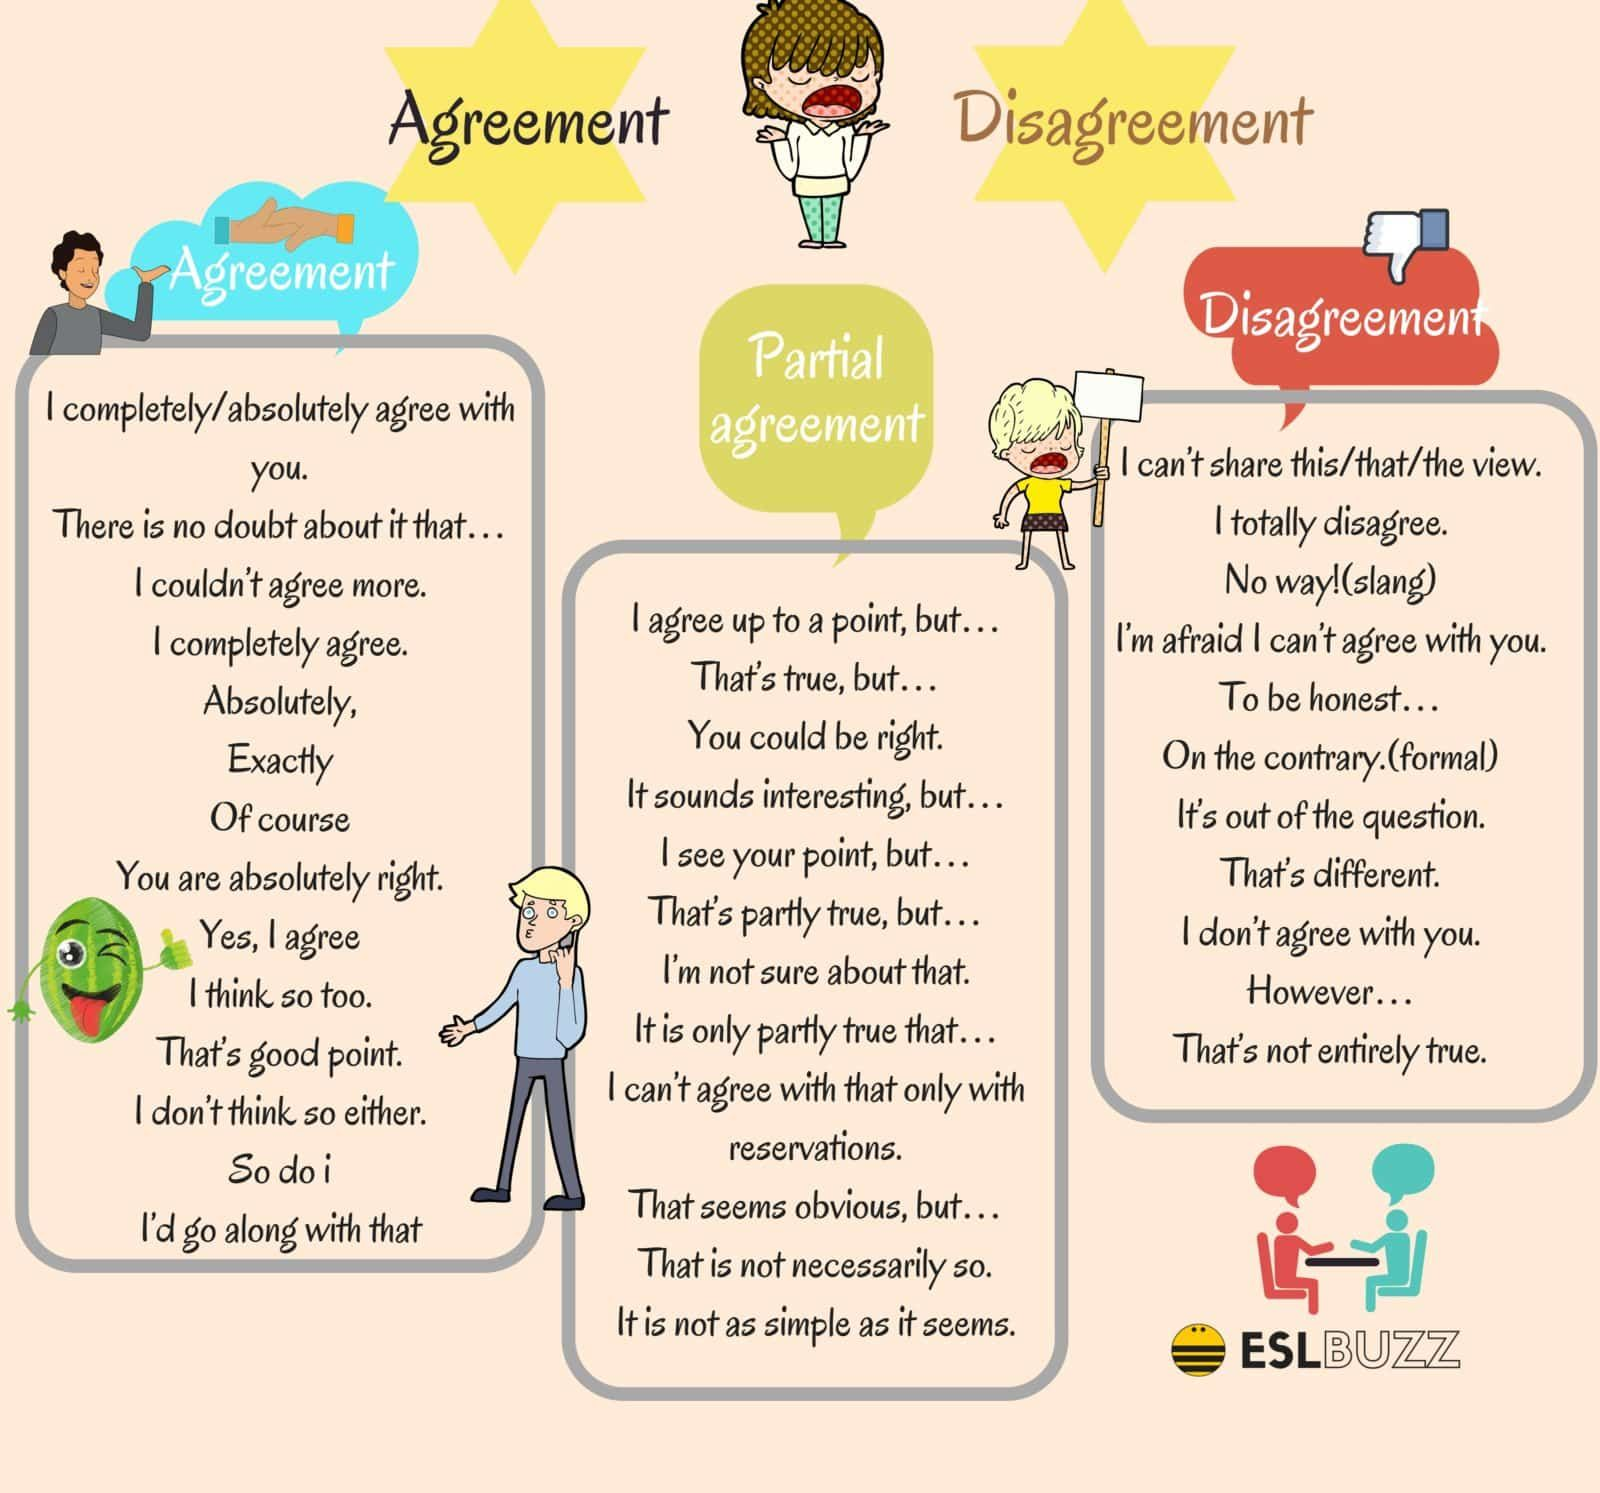 How To Express Agreement Partial Agreement Or